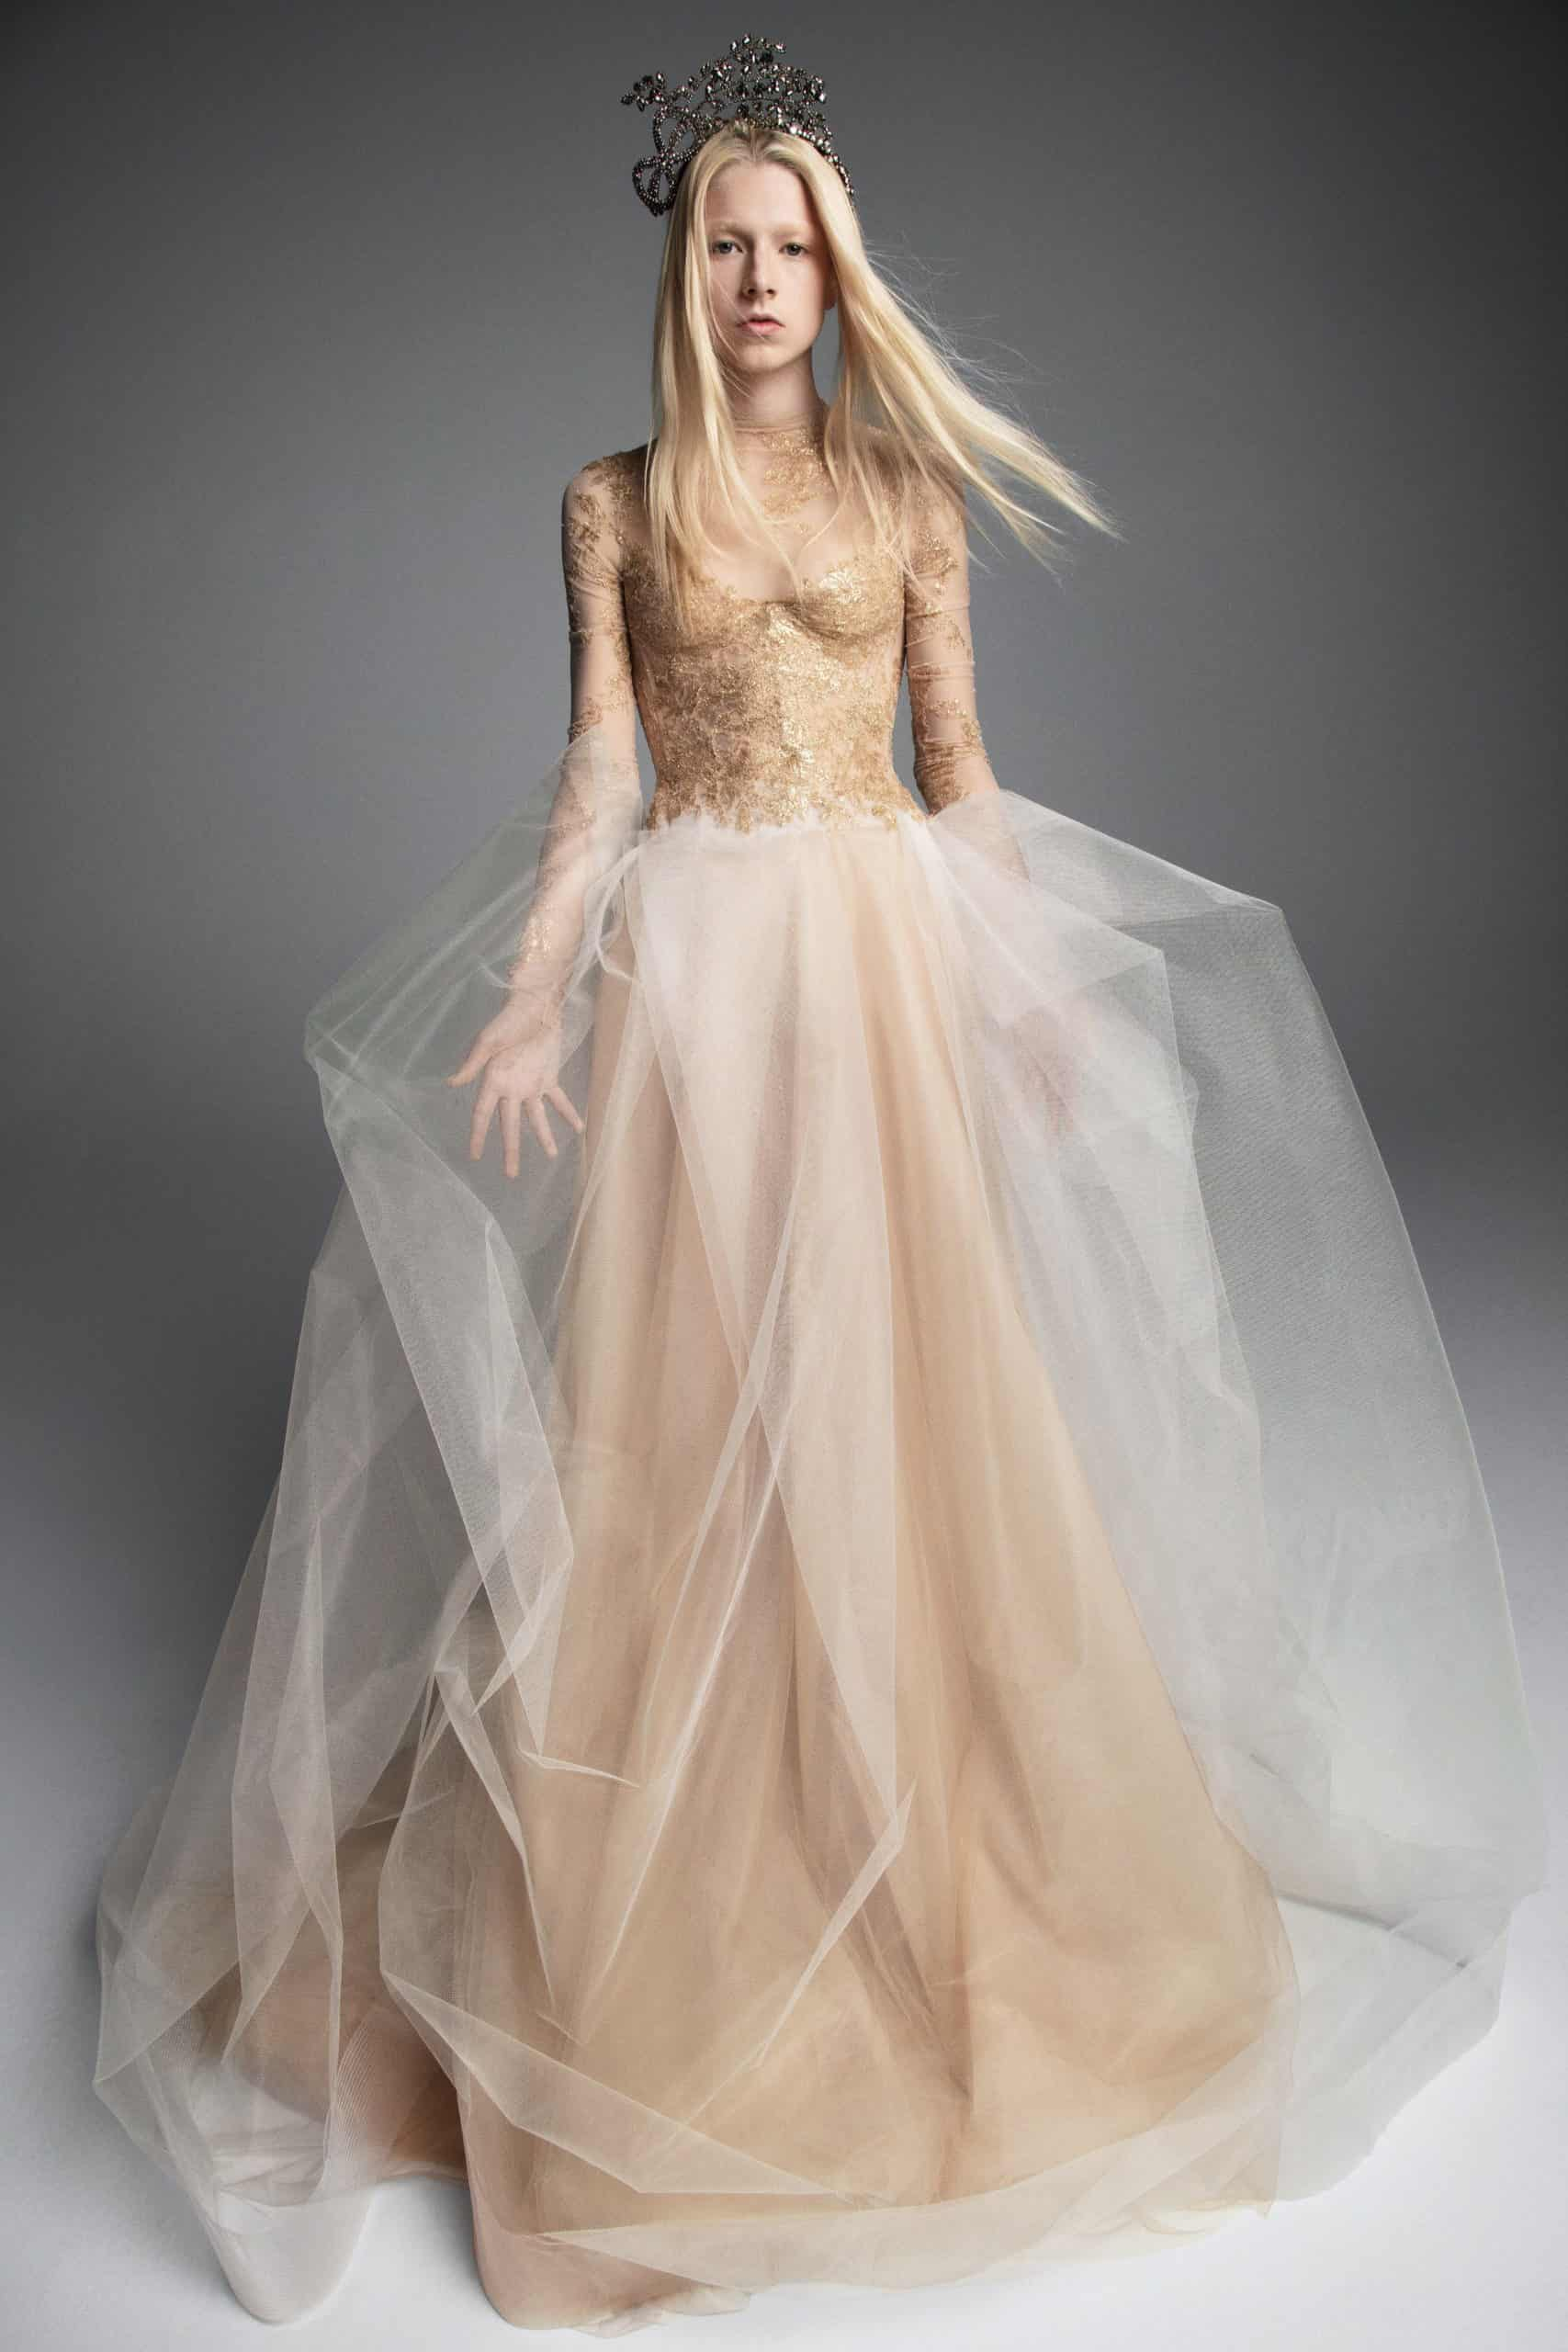 lase wedding dress with a extra tulle skirt fall 2019 by Vera Wang